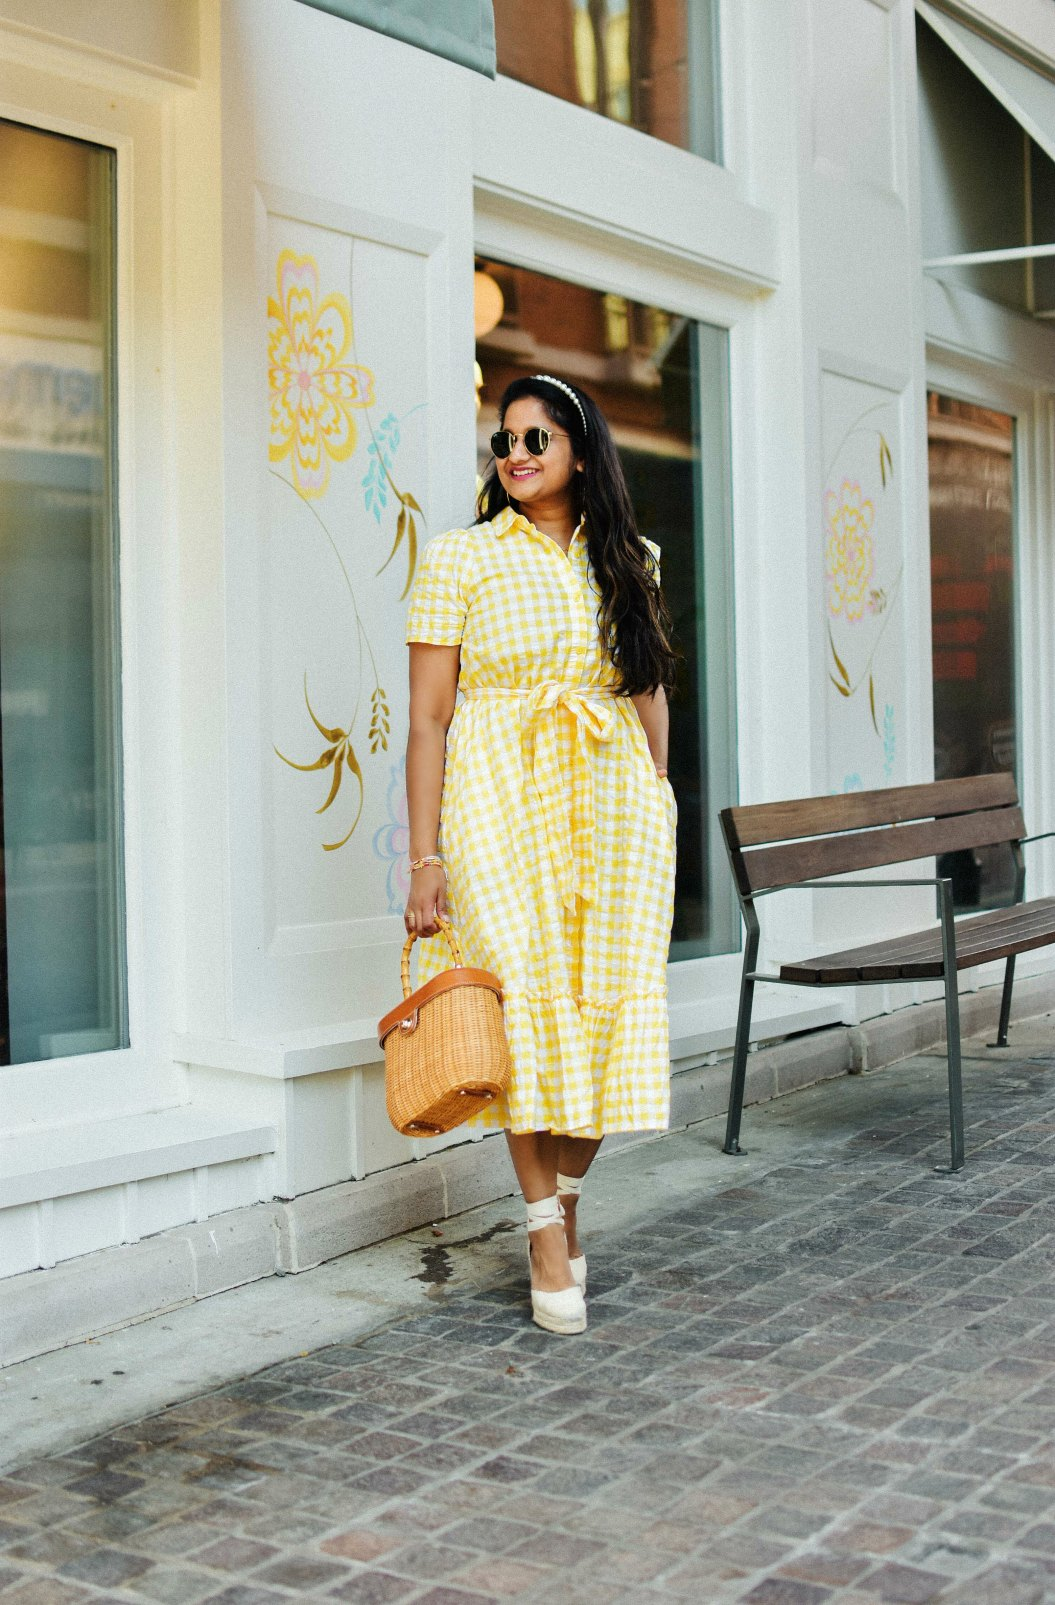 Wearing Wearing Lisa Marie Fernandez for Target Gingham Puff Sleeve Shirtdress, Castaner Carina Wedges in Cream, J.McLaughlin Ava wicker bag, pearl Headband 8  | Lisa Marie Fernandez by popular Maryland fashion blog, Dreaming Loud: image of a woman a Target Lisa Marie Fernandez yellow gingham dress, Castañer cream Carina 80 ankle tie wedge sandals, Amazon LXBSIYI Huge Gold Hoop Earrings, Olive and Piper Madison Pearl Headband, and holding a J. McLaughlin Skip to the end of the images gallery Skip to the beginning of the images gallery Ava Wicker Bag.